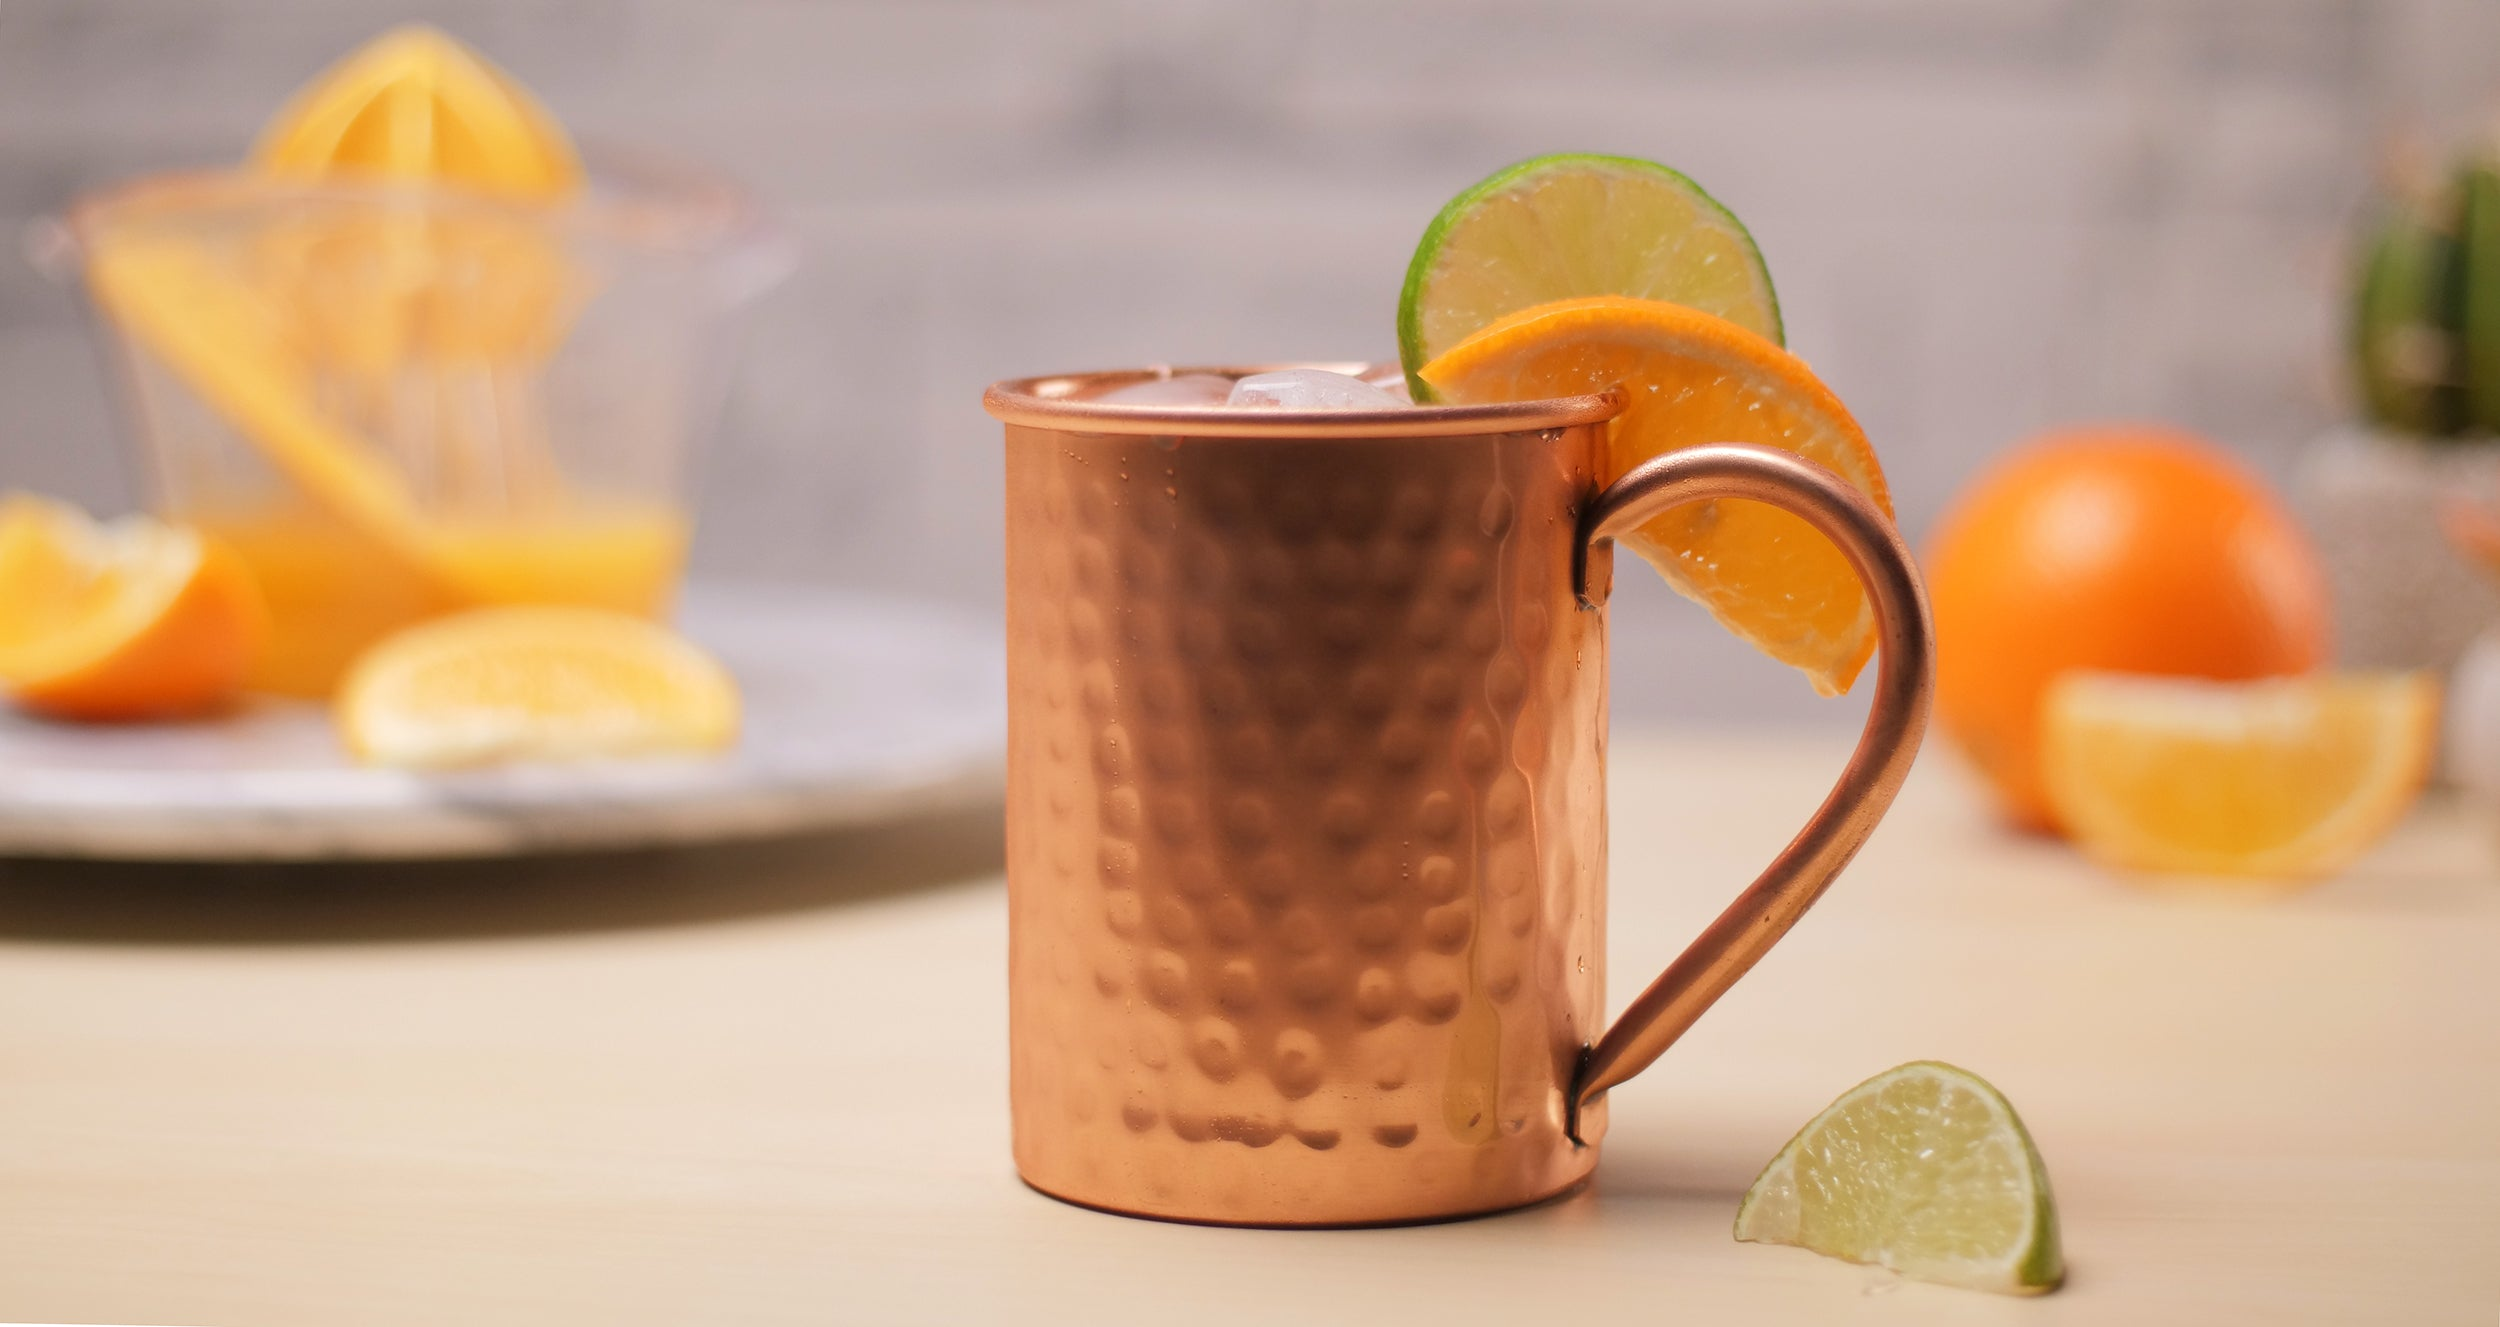 19 Best Moscow Mule Variations & Recipes You Must Try